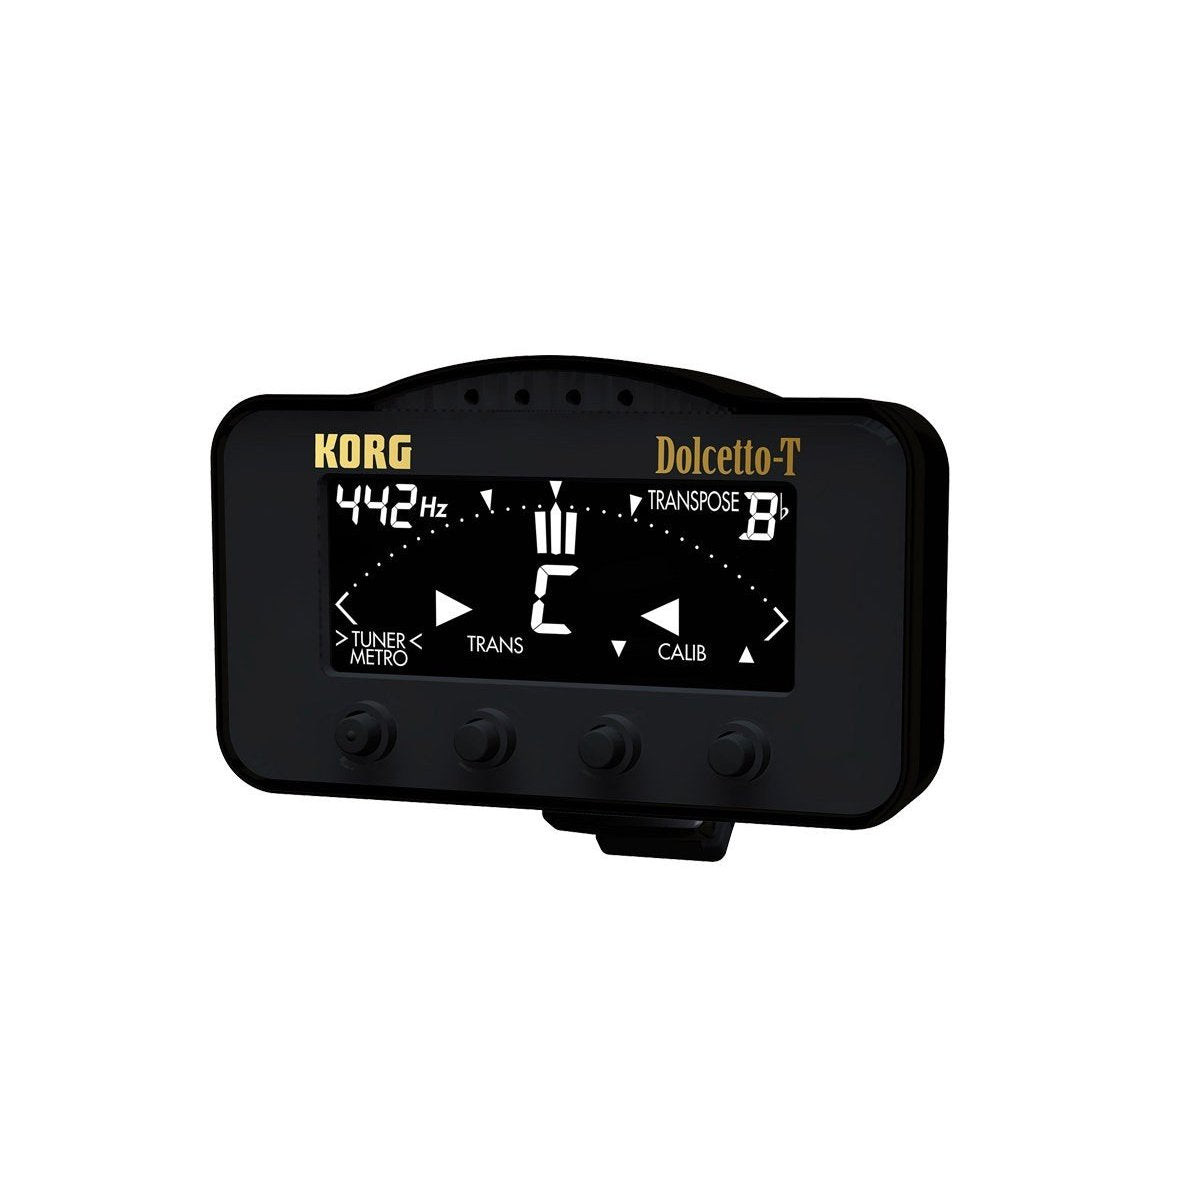 Korg - AW-3T Dolcetto-T Clip-On Tuner/Metronome-Tuner & Metronome-Korg-Music Elements